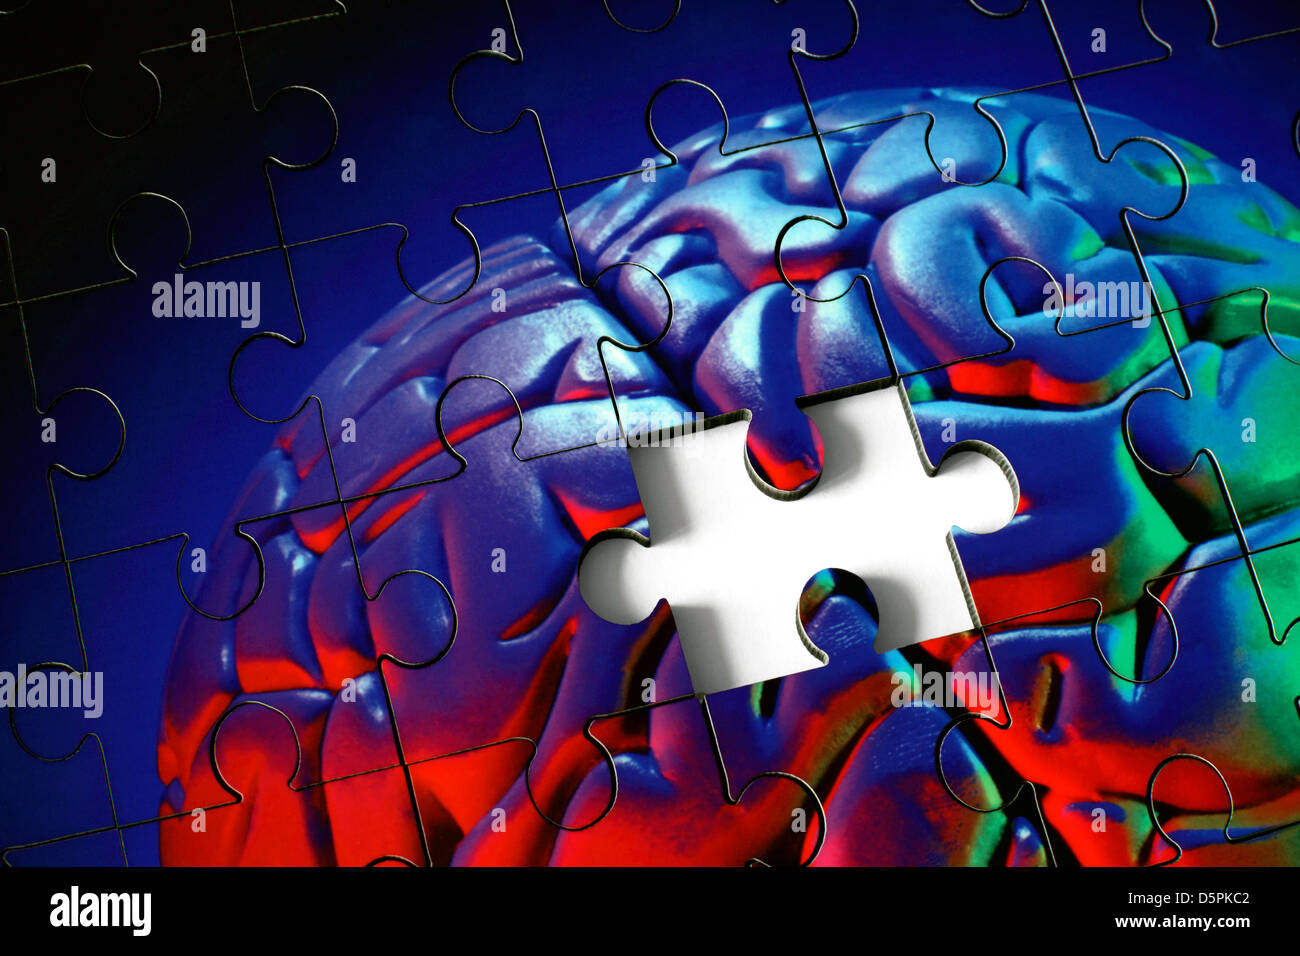 A piece missing from a jigsaw puzzle made from a photograph (with coloured flash) of a plastic model human brain. - Stock Image